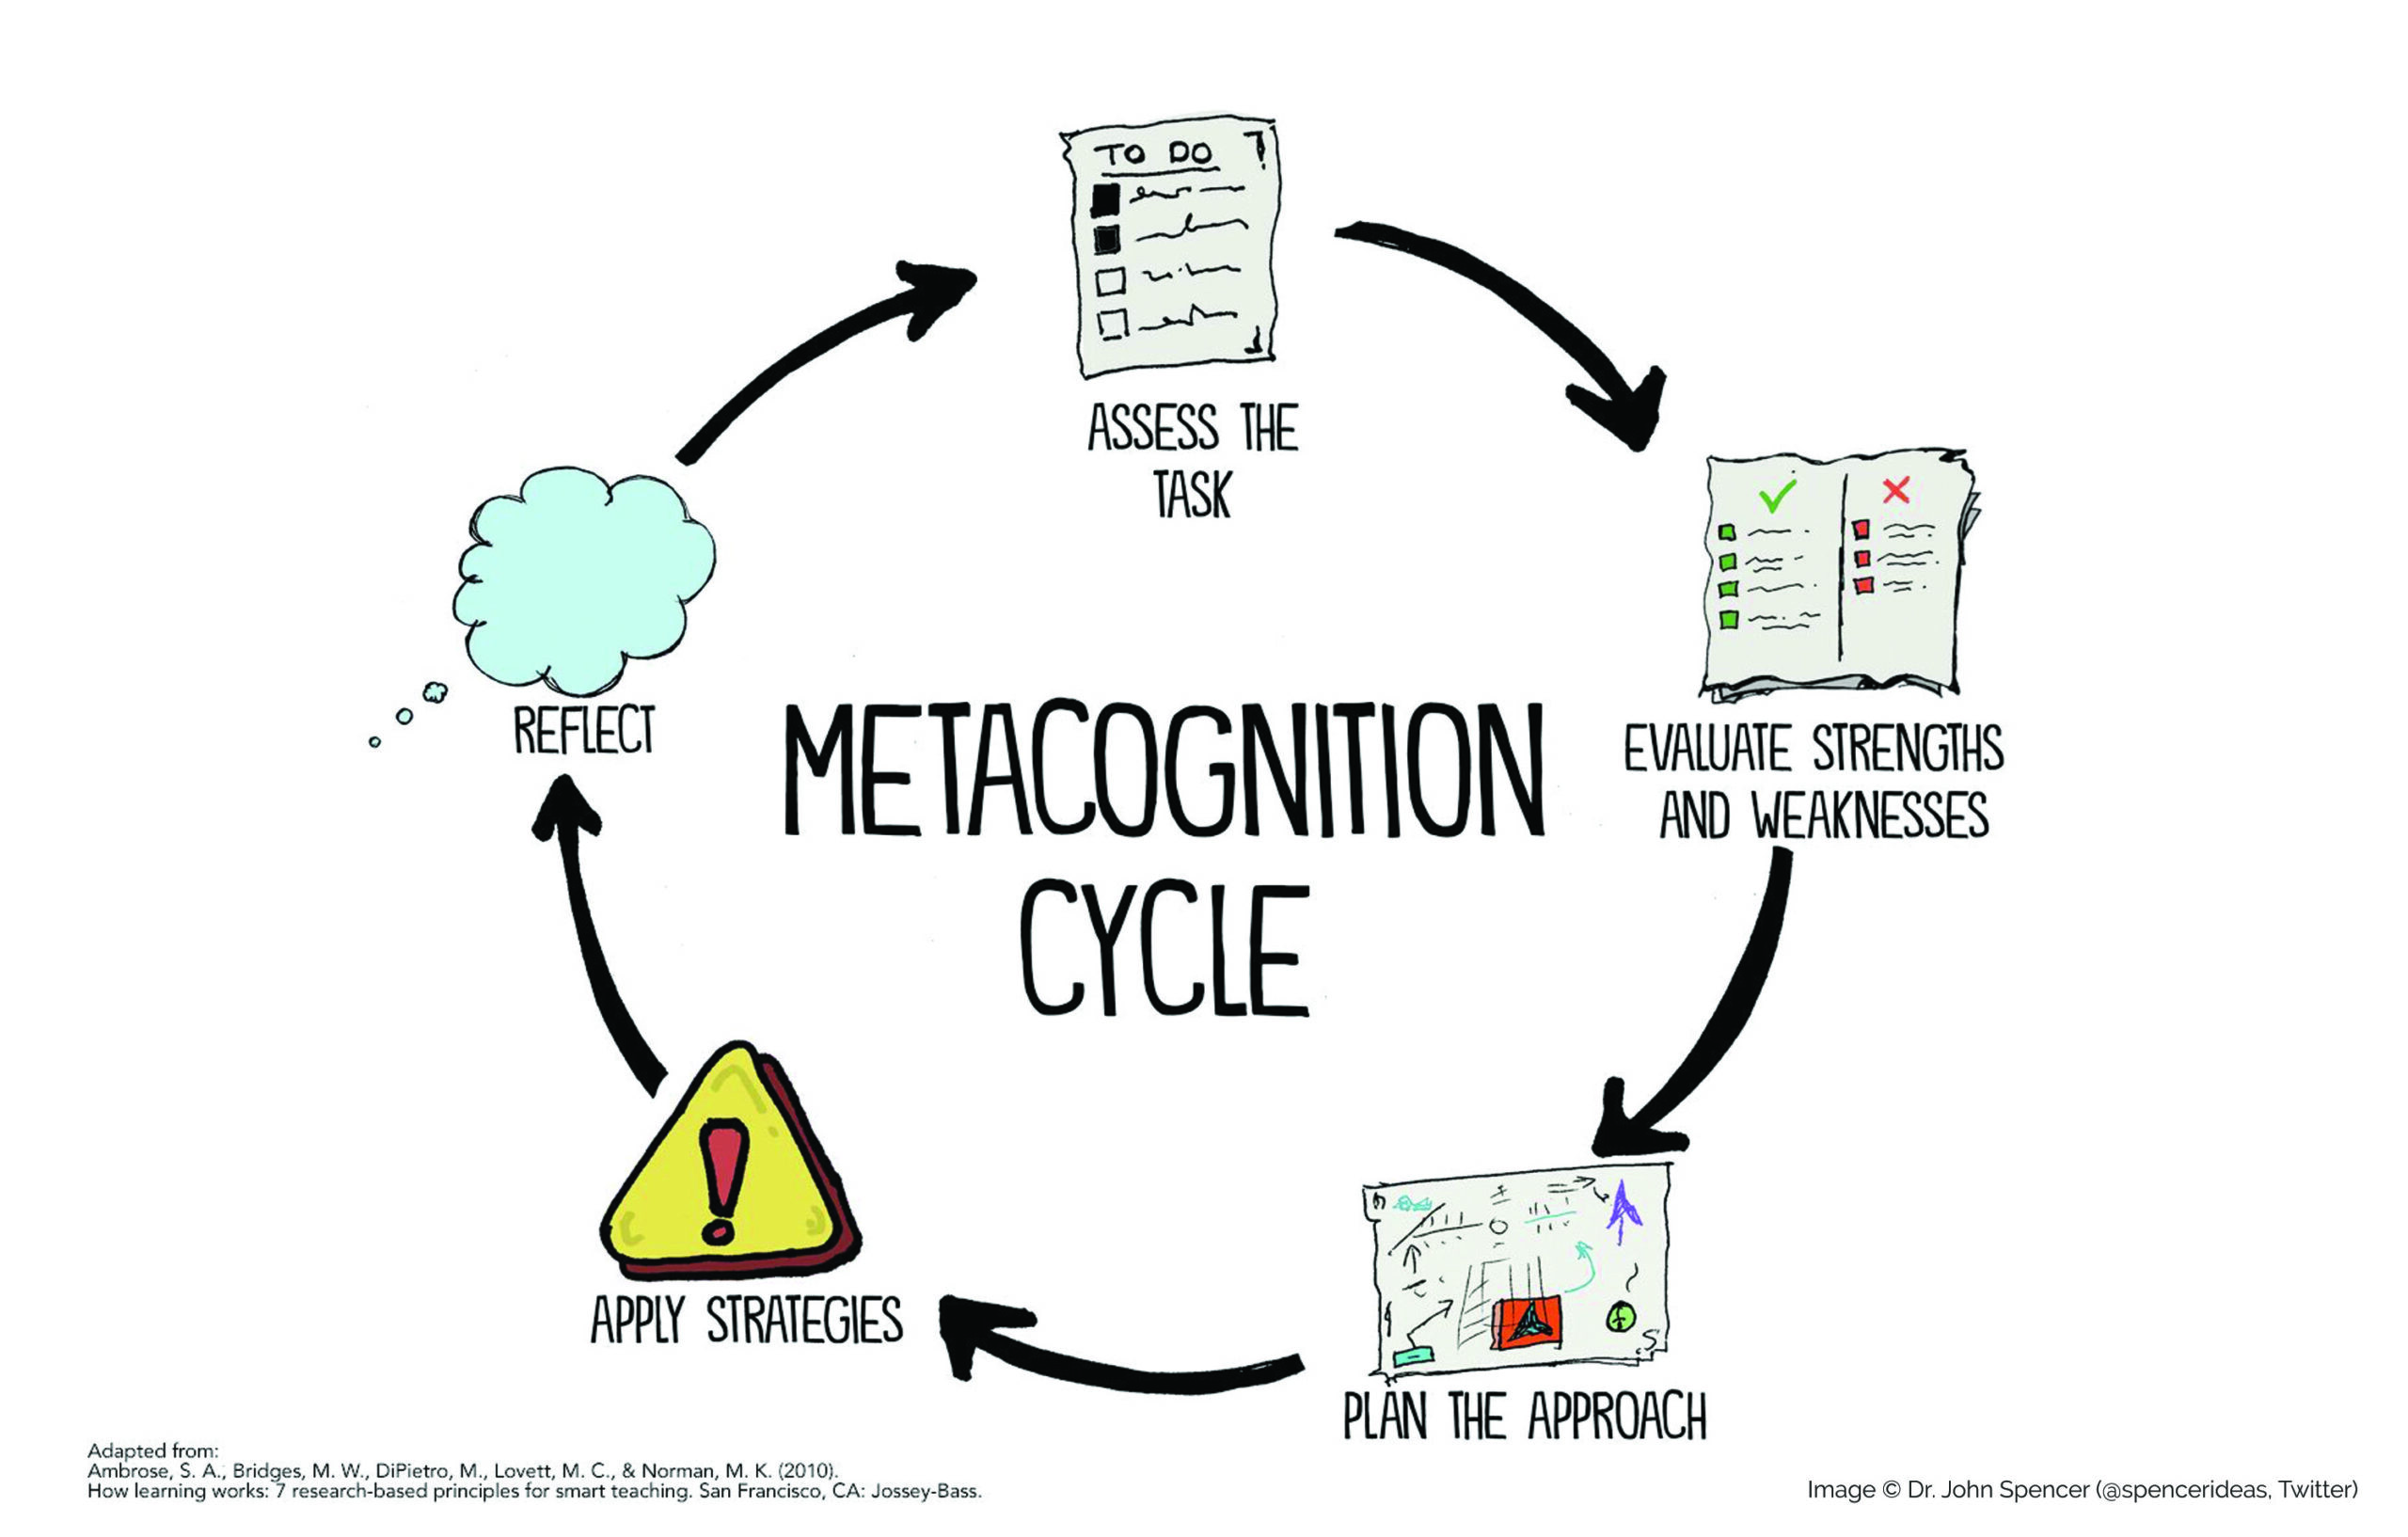 The metacognition cycle